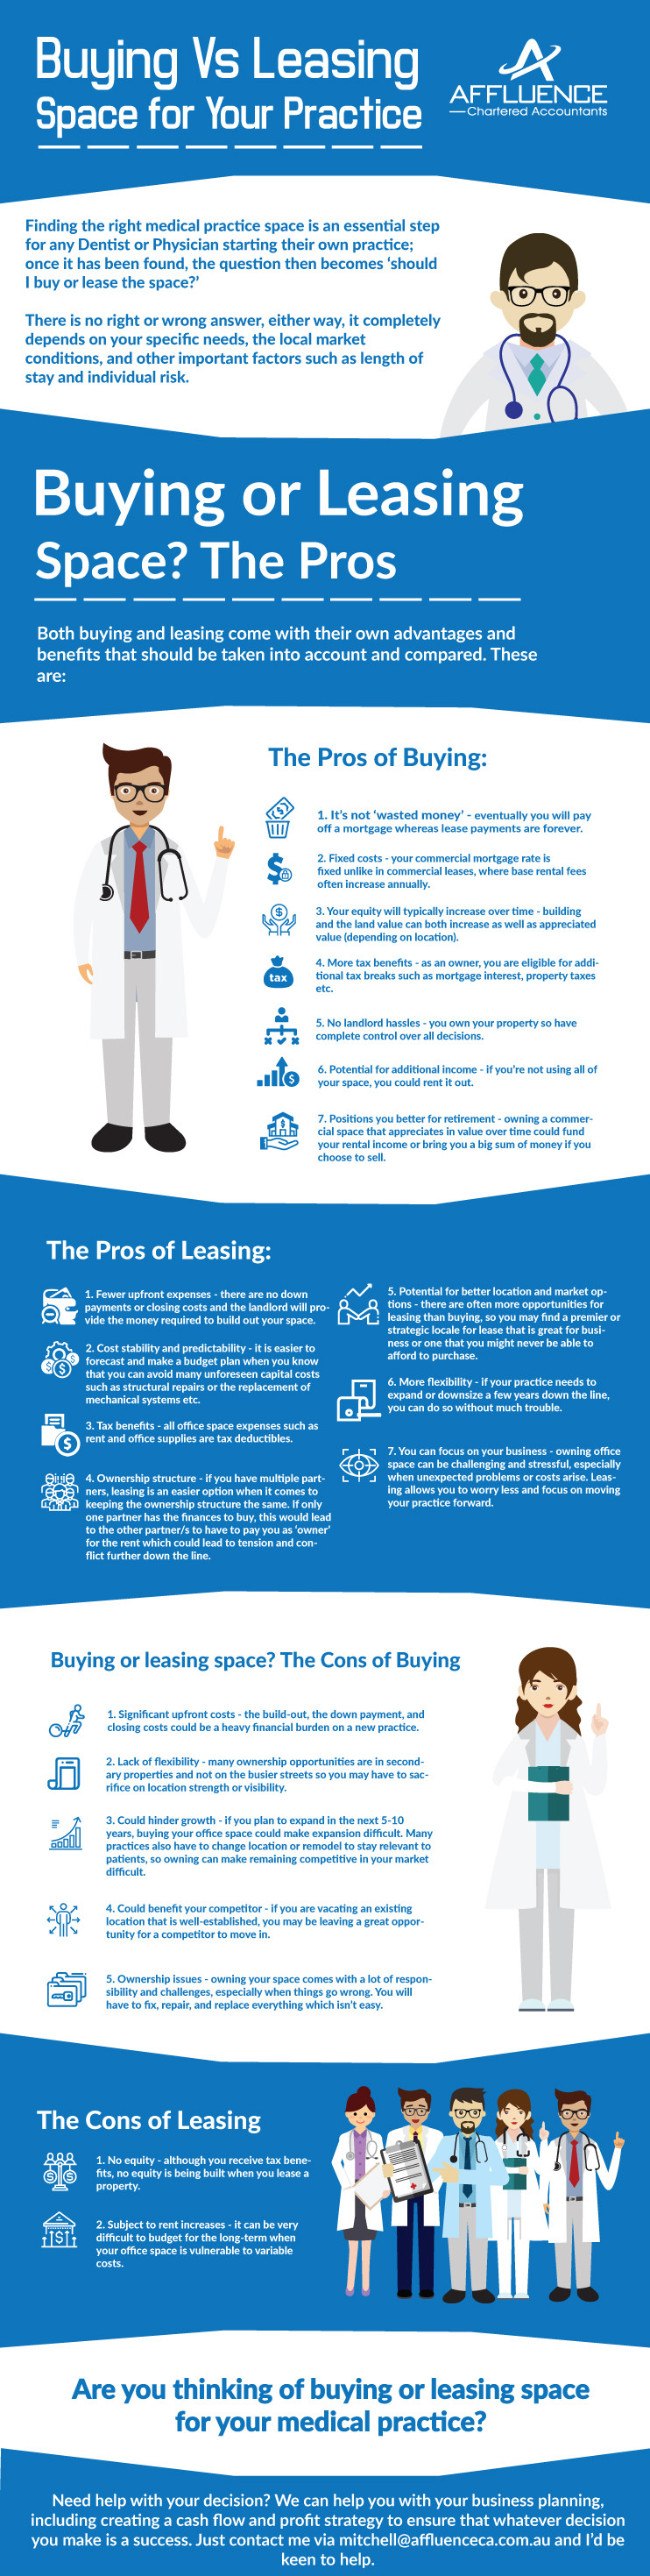 Buying Vs Leasing Space For Your Practice